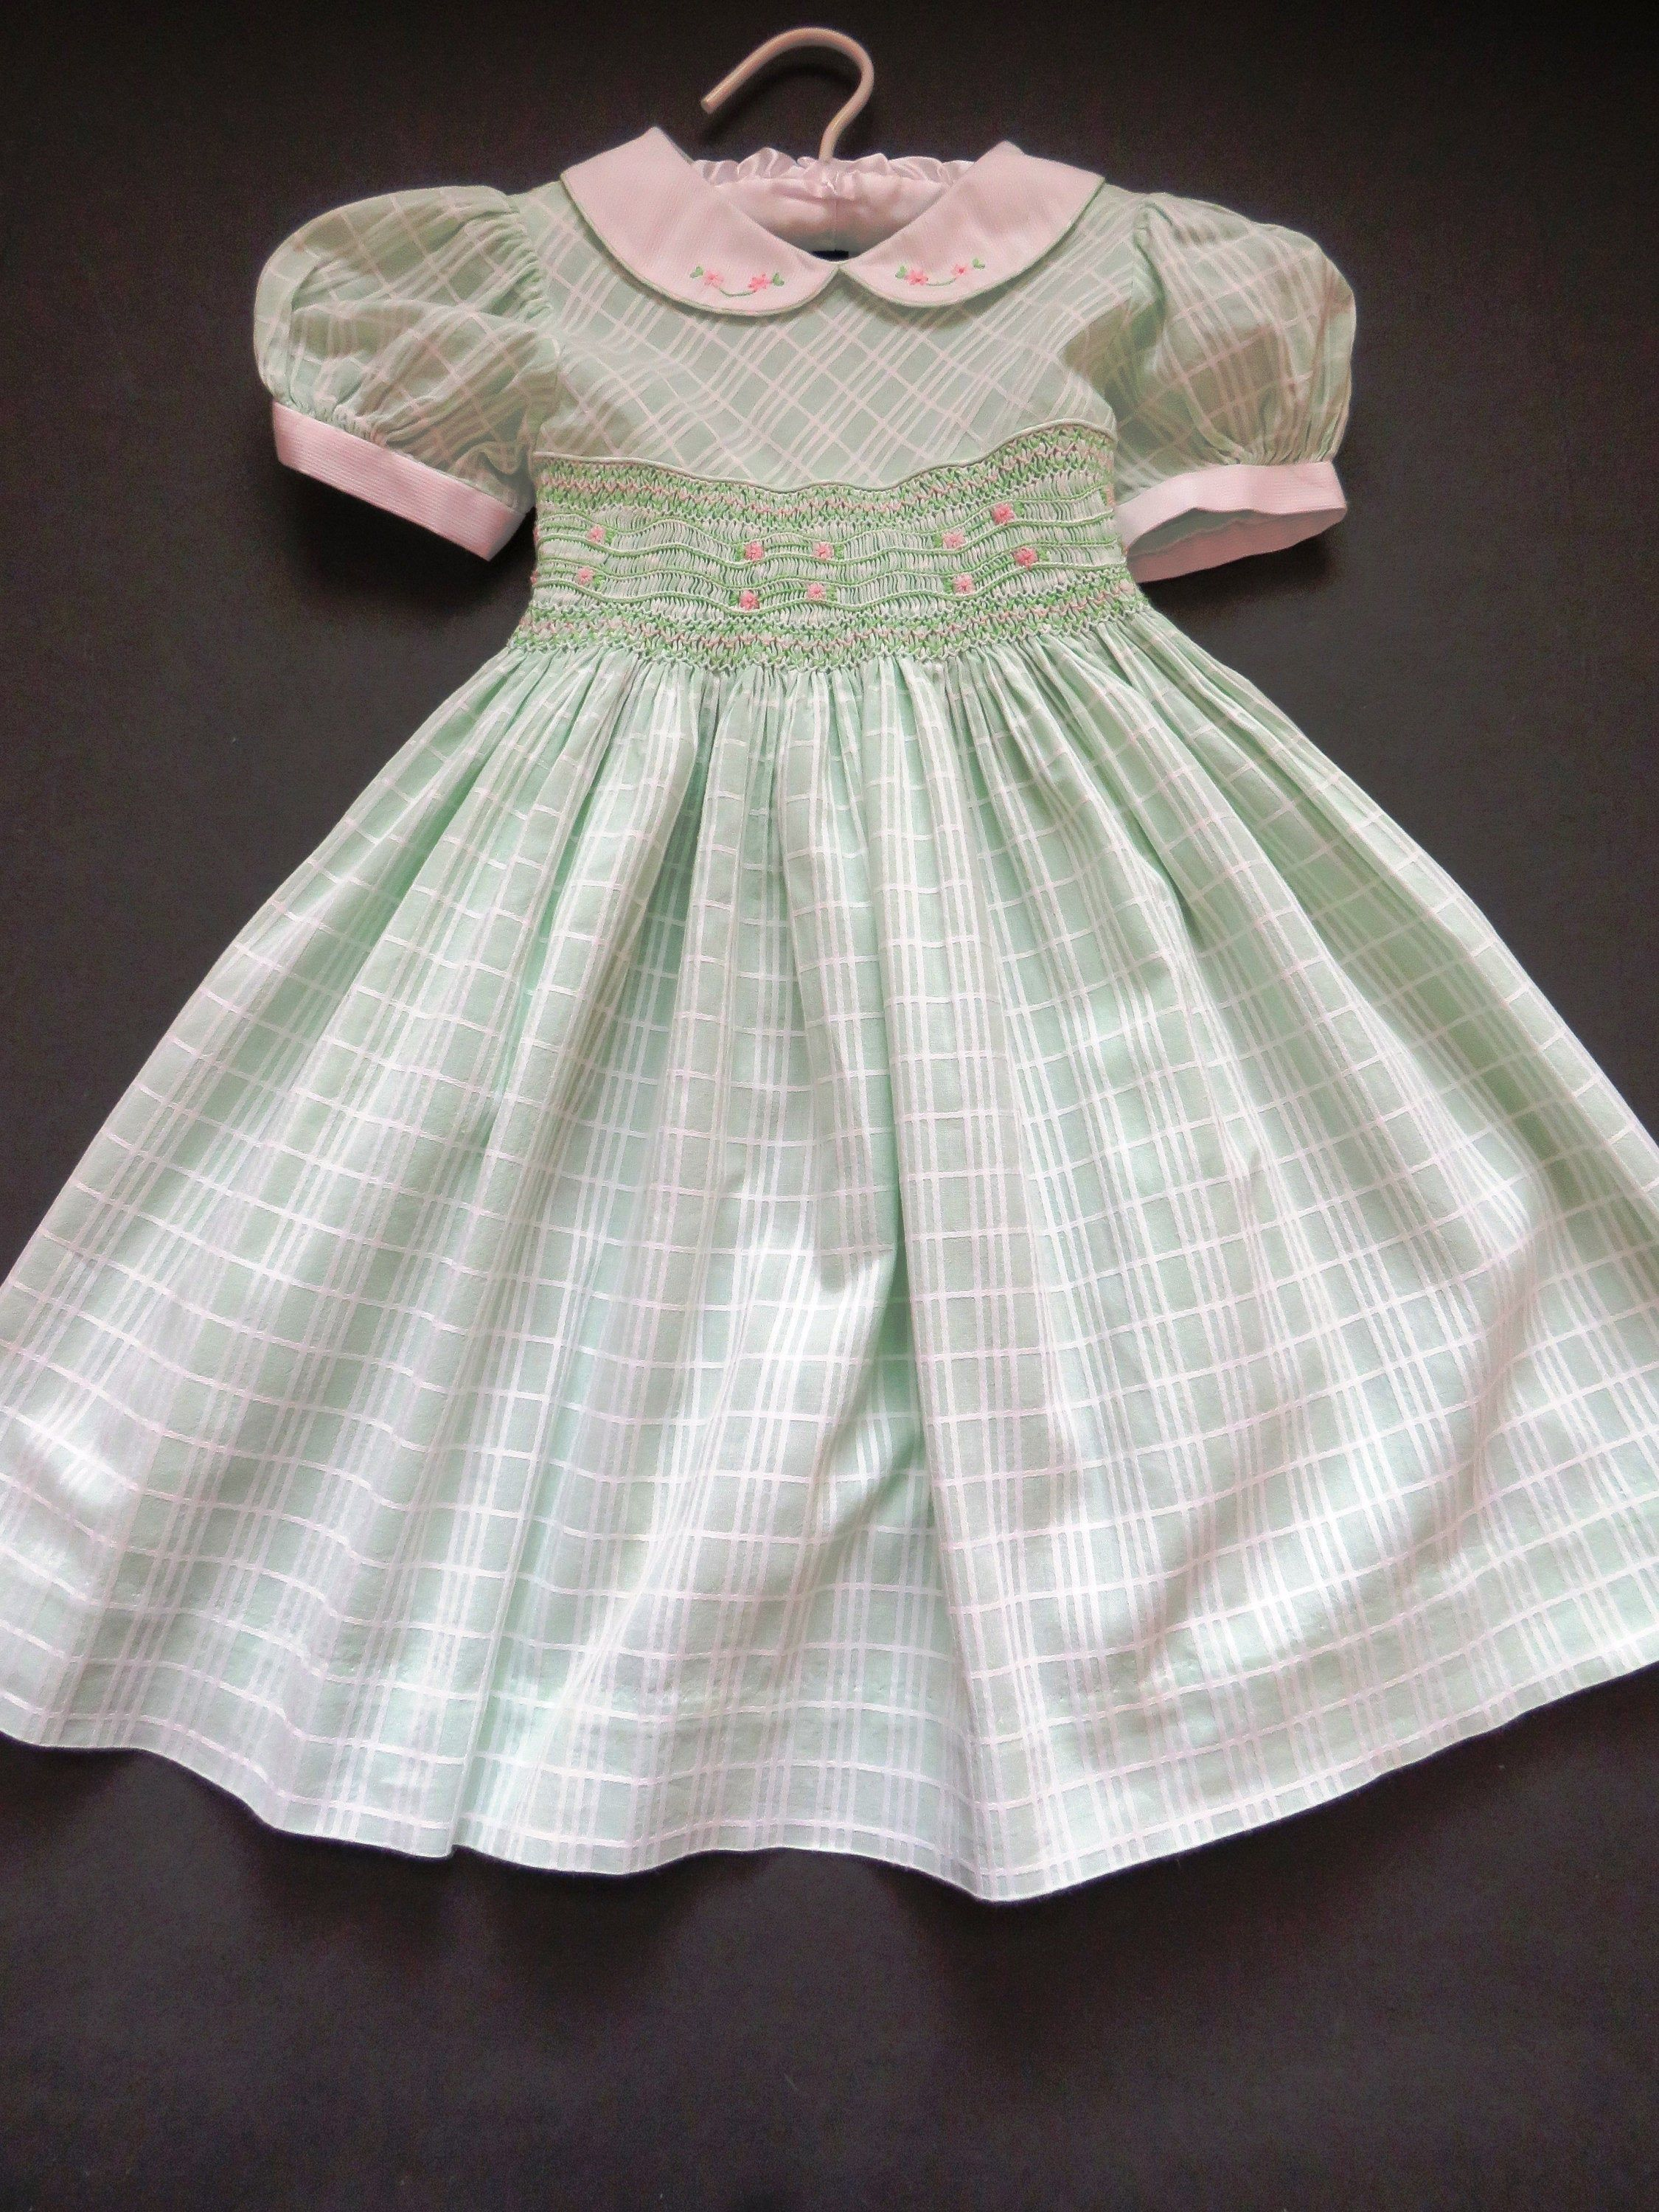 Vintage Toddlers Girls Dress By Carriage Boutiques Size 4t Etsy In 2021 Toddler Girl Dresses Vintage Toddler Childrens Clothes [ 3000 x 2250 Pixel ]